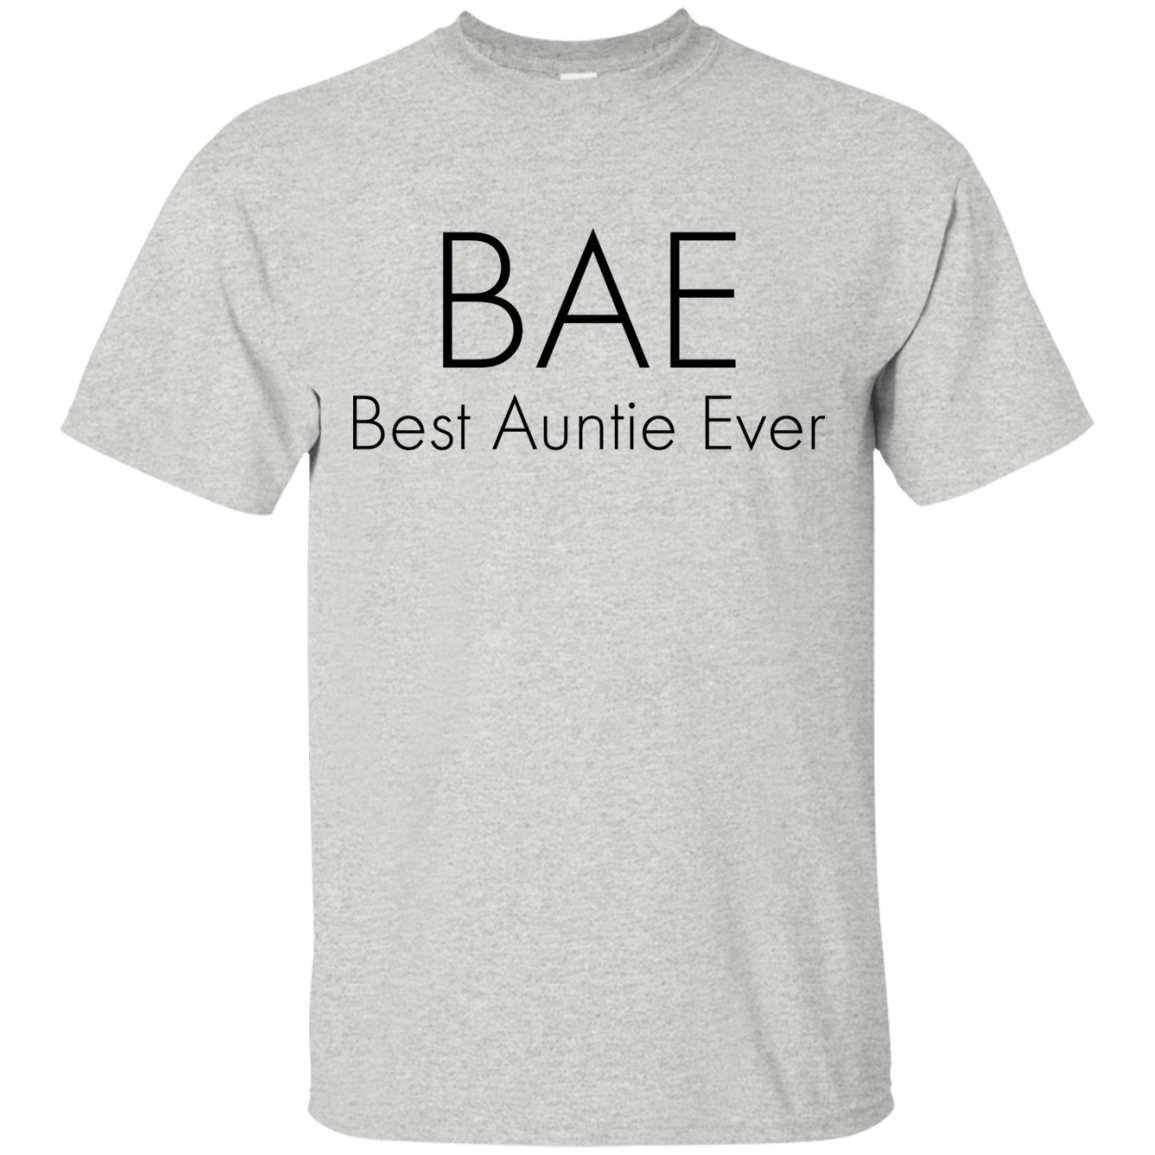 BAE Best Auntie Ever T Shirt, Hoodies